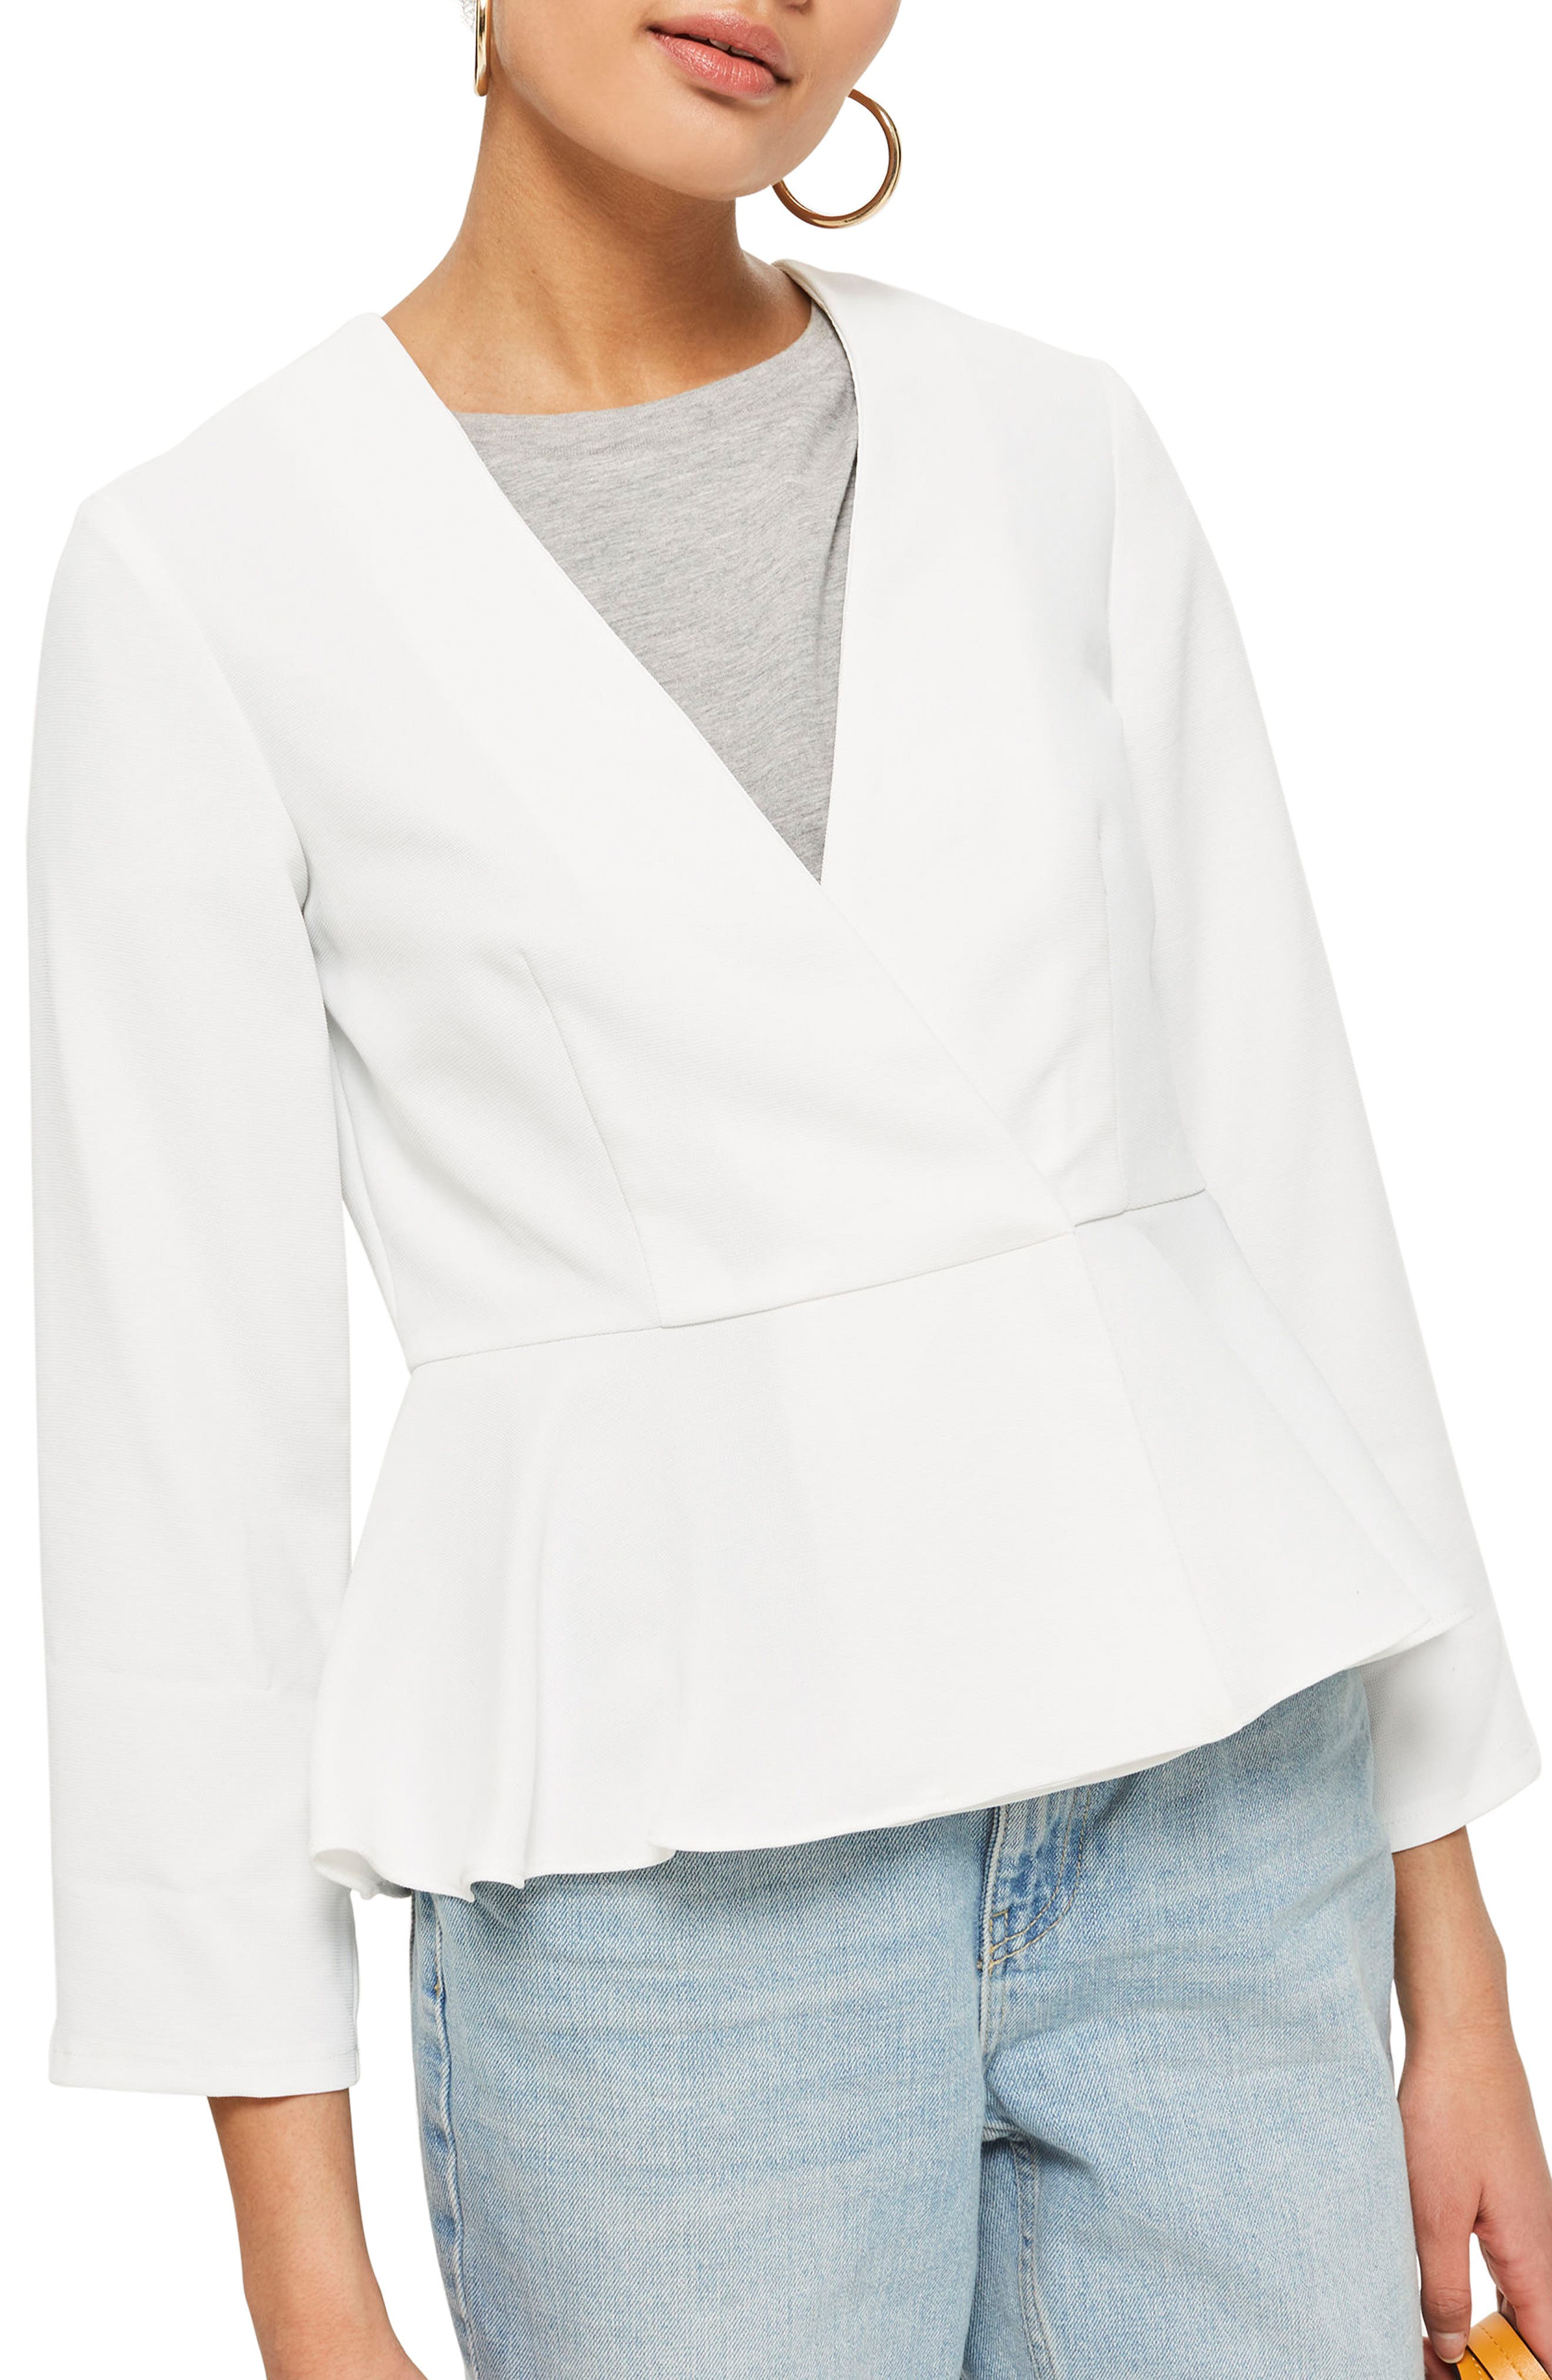 Crossover Peplum Jacket,                             Main thumbnail 1, color,                             Ivory